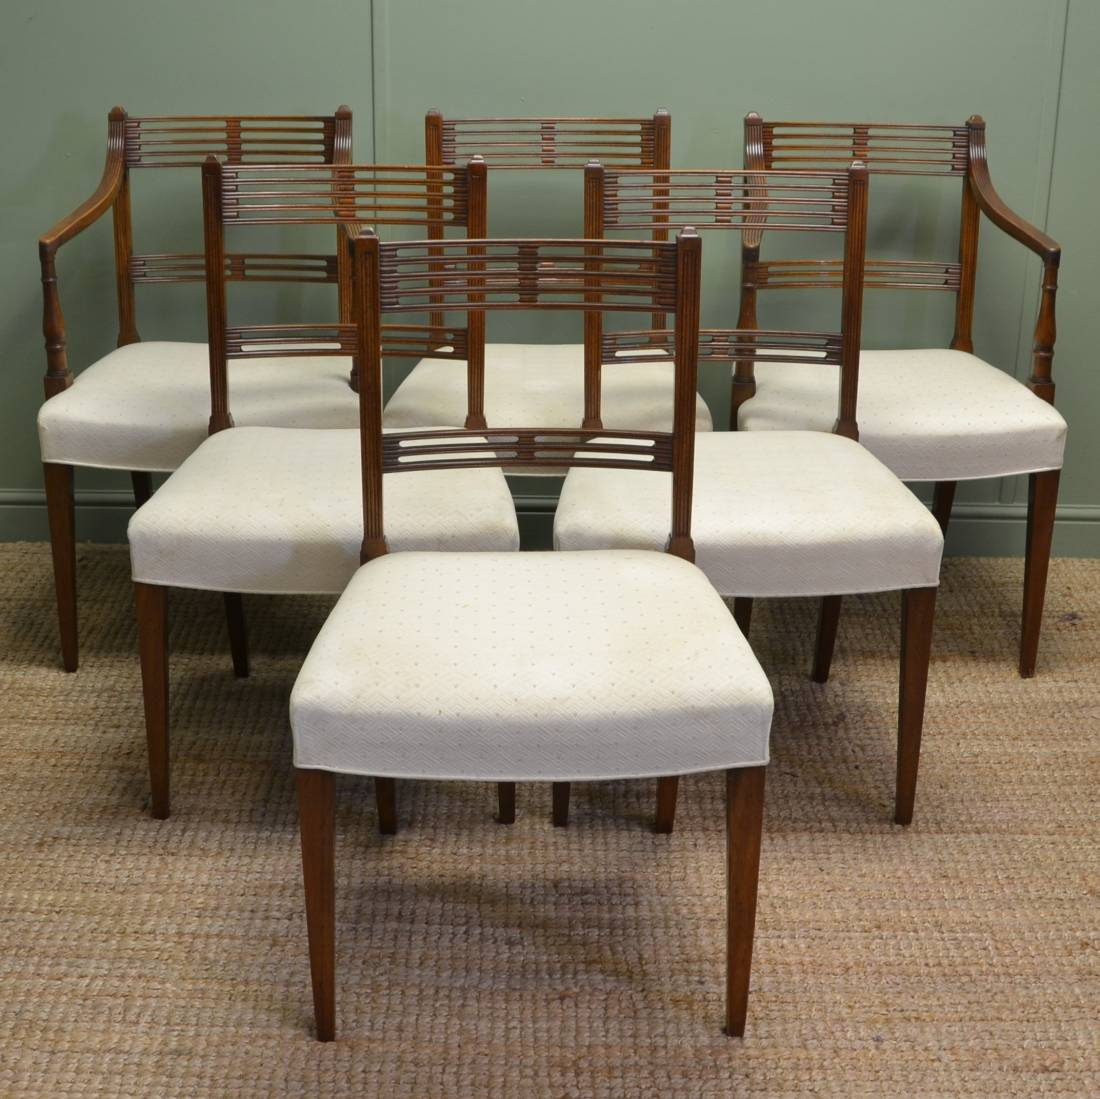 Antique Mahogany Dining Room Furniture: Set Of Six Hepplewhite Design Antique Mahogany Dining